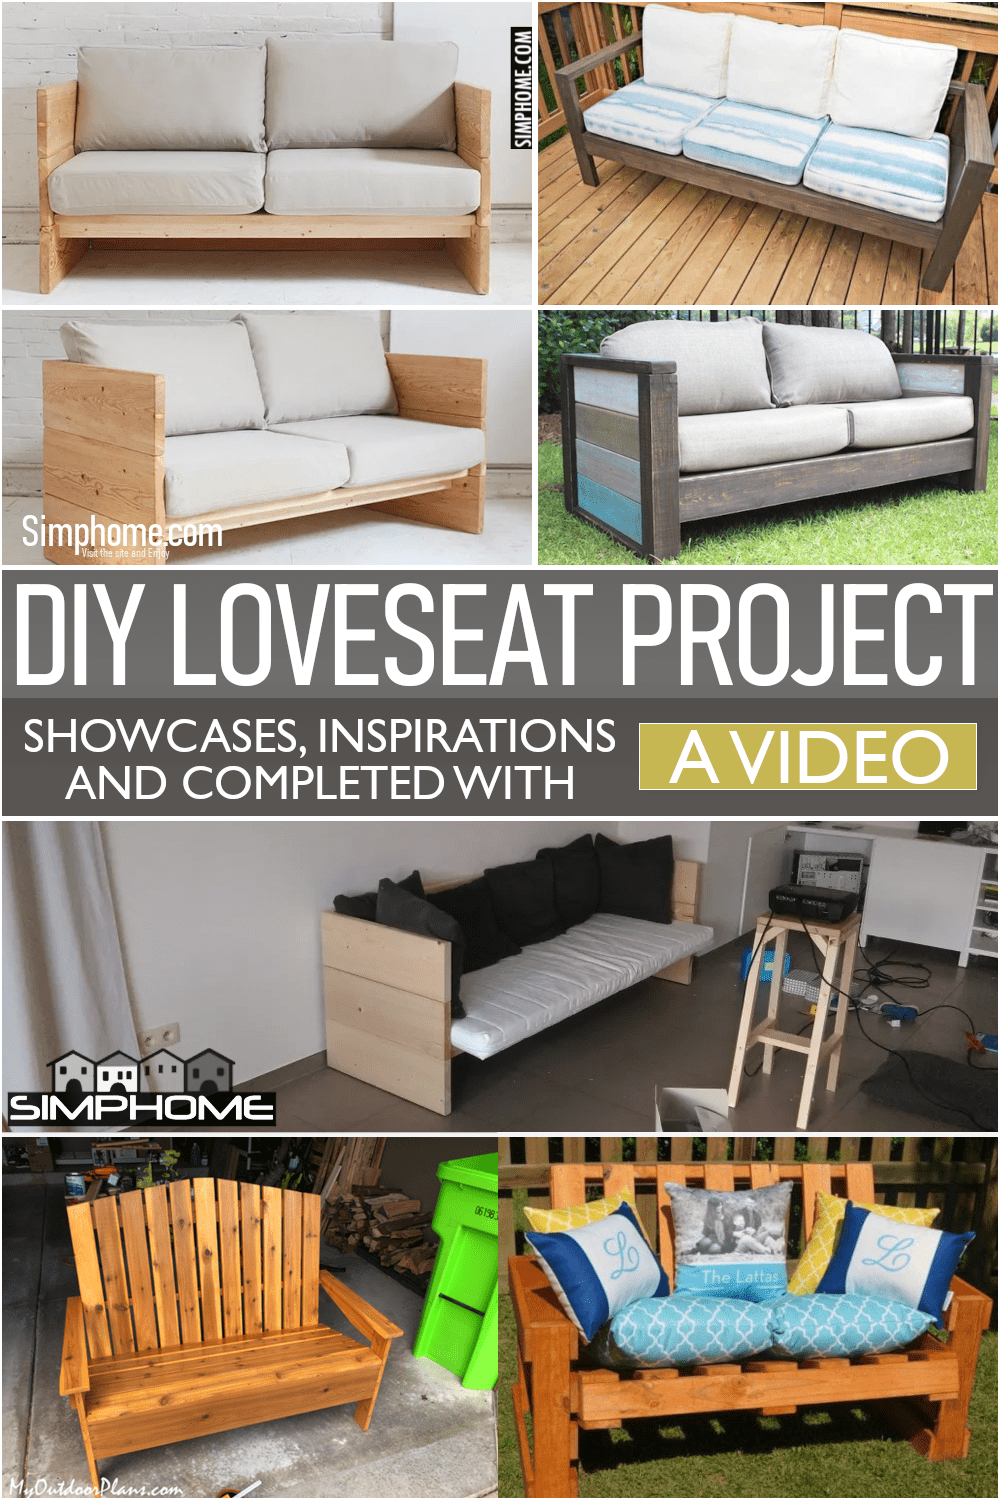 10 Loveseat DIY Projects via Simphome.comFeatured